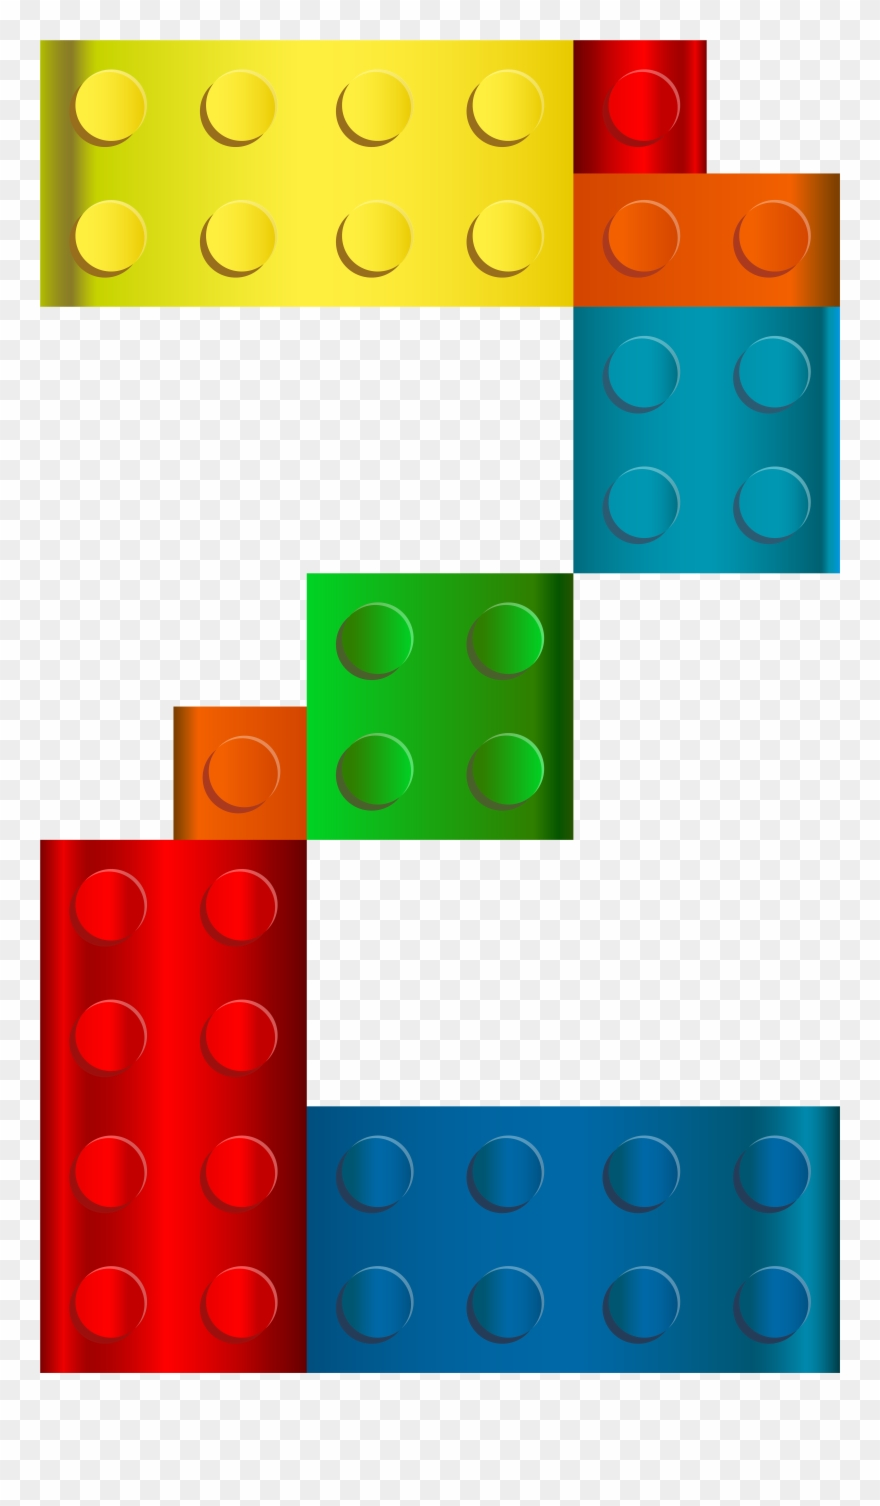 Lego Number Two Png Transparent Clip Art Imageu200b.